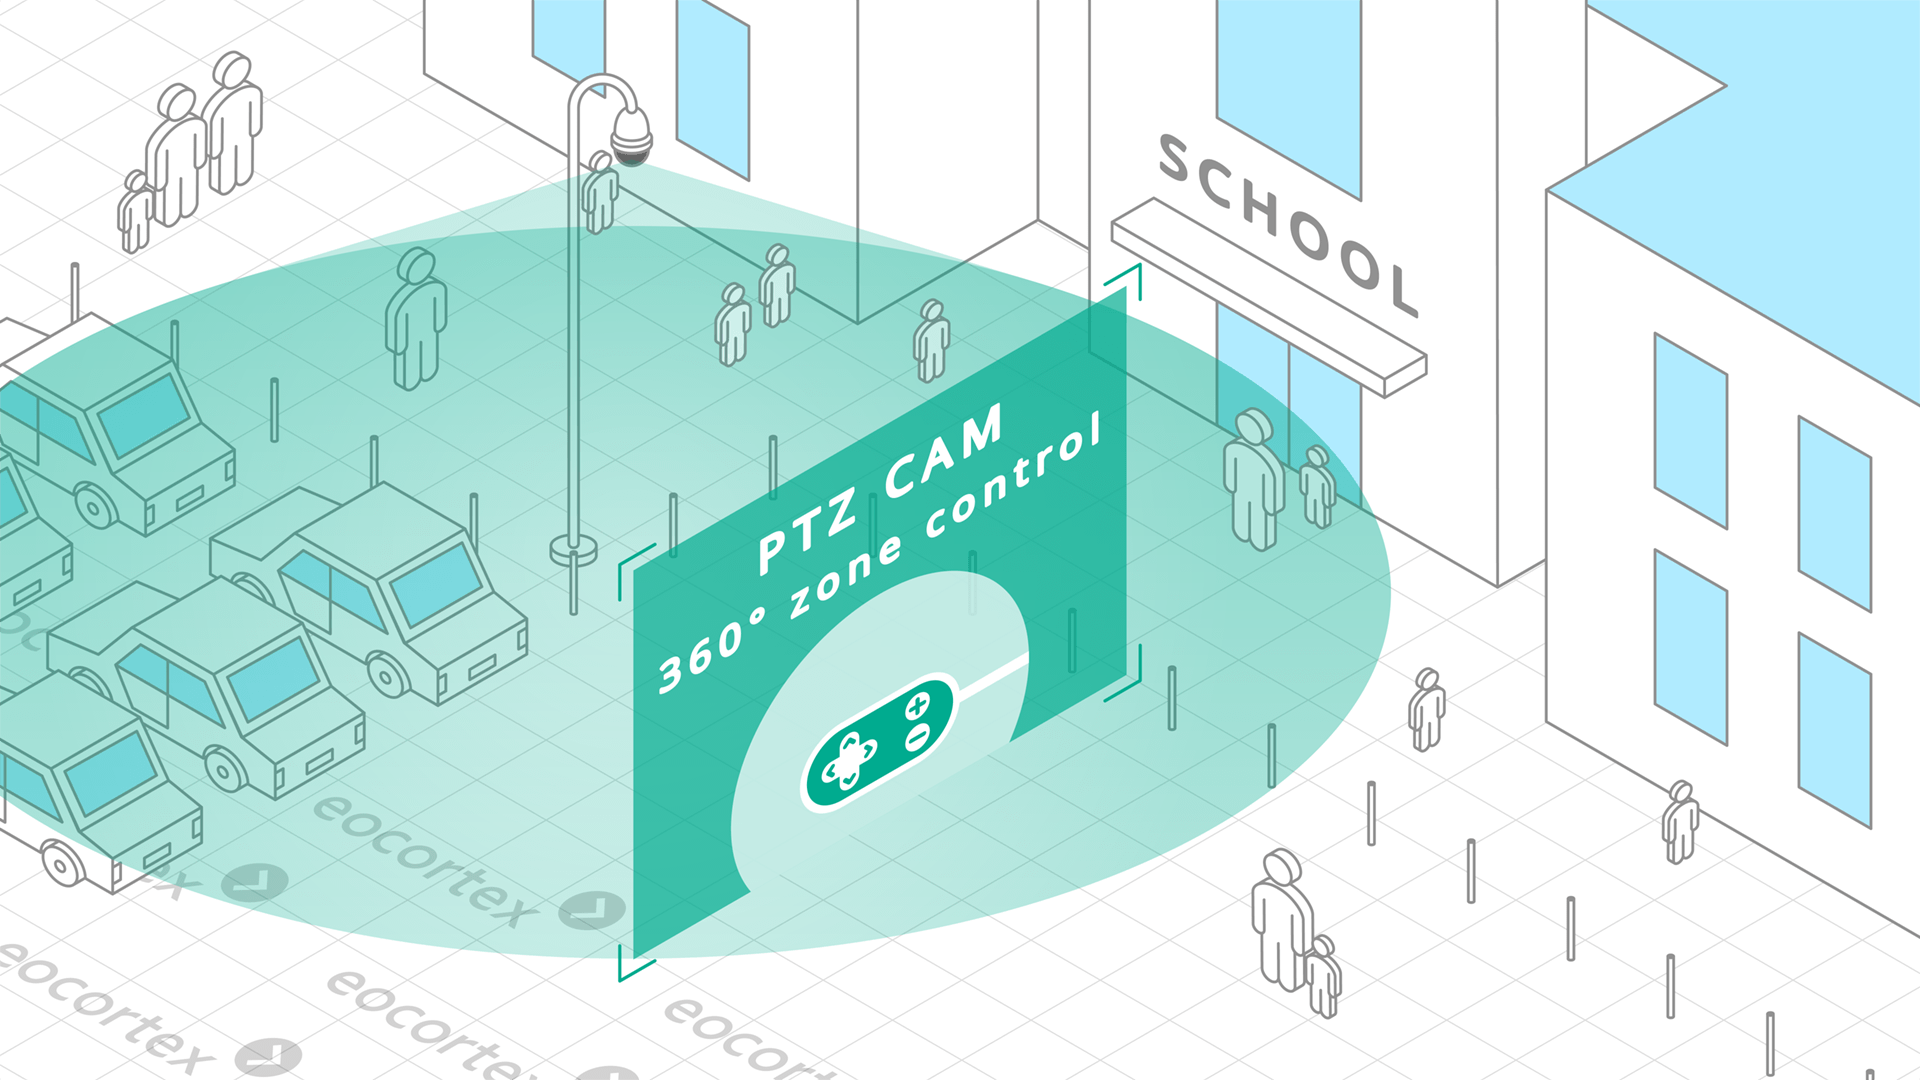 Showcasing of PTZ Camera Control for education facilities. CCTV surveillance system operates on the basis of the Eocortex Video Management Software.